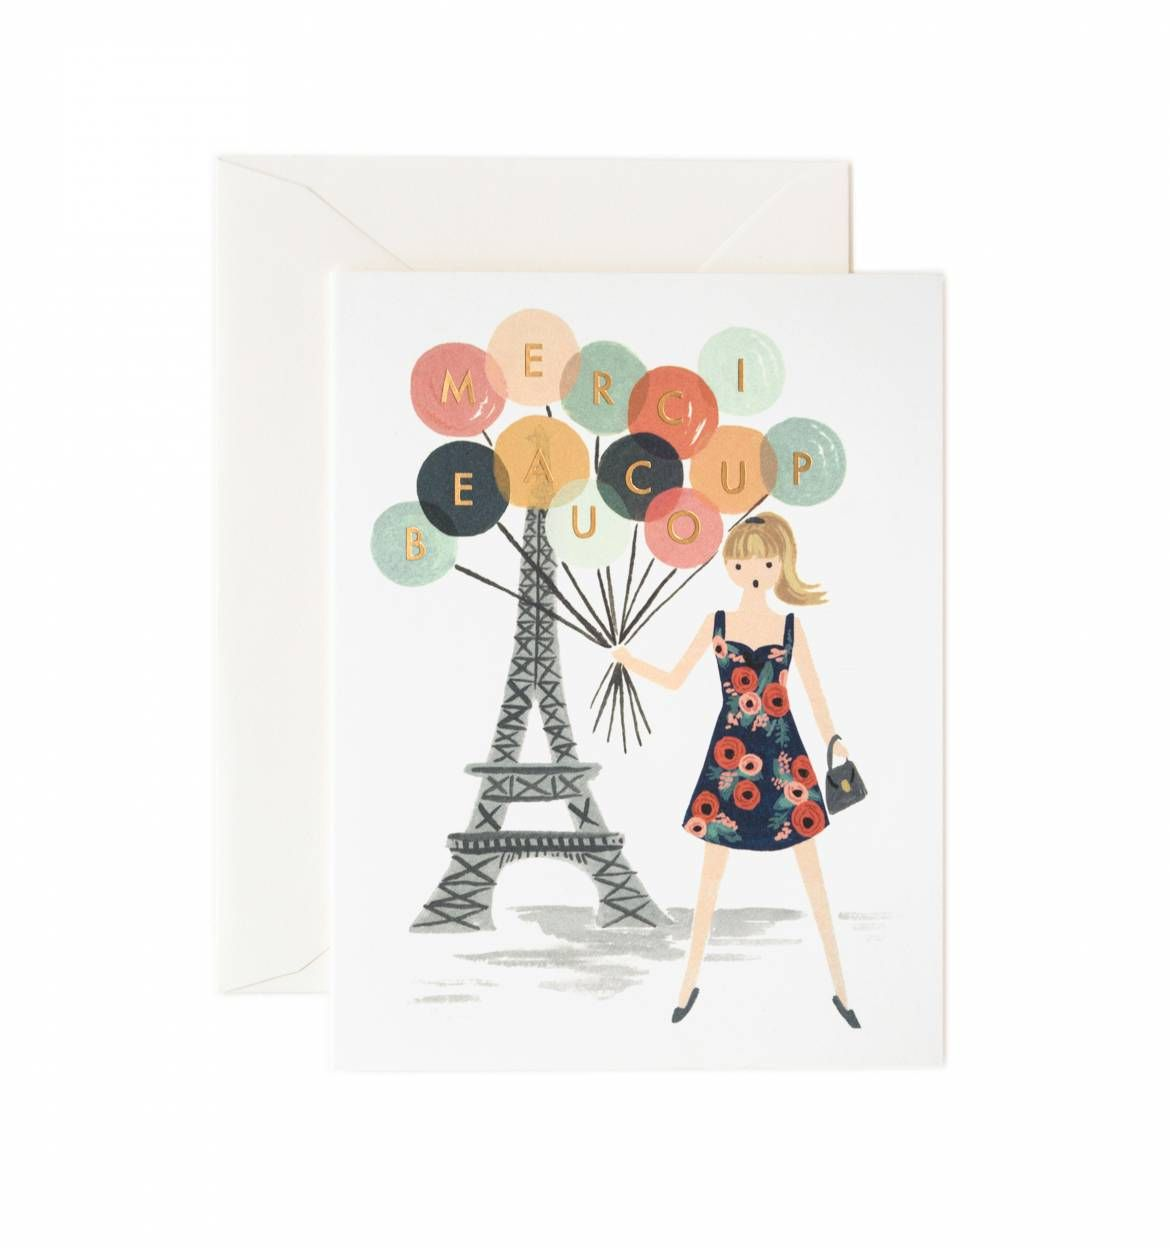 Merci beaucoup available as a single card or boxed set of 8 buy merci beaucoup full color plus foil stamp greeting card measures x merci beaucoup card by rifle paper co home gifts gifts stationery office kristyandbryce Choice Image